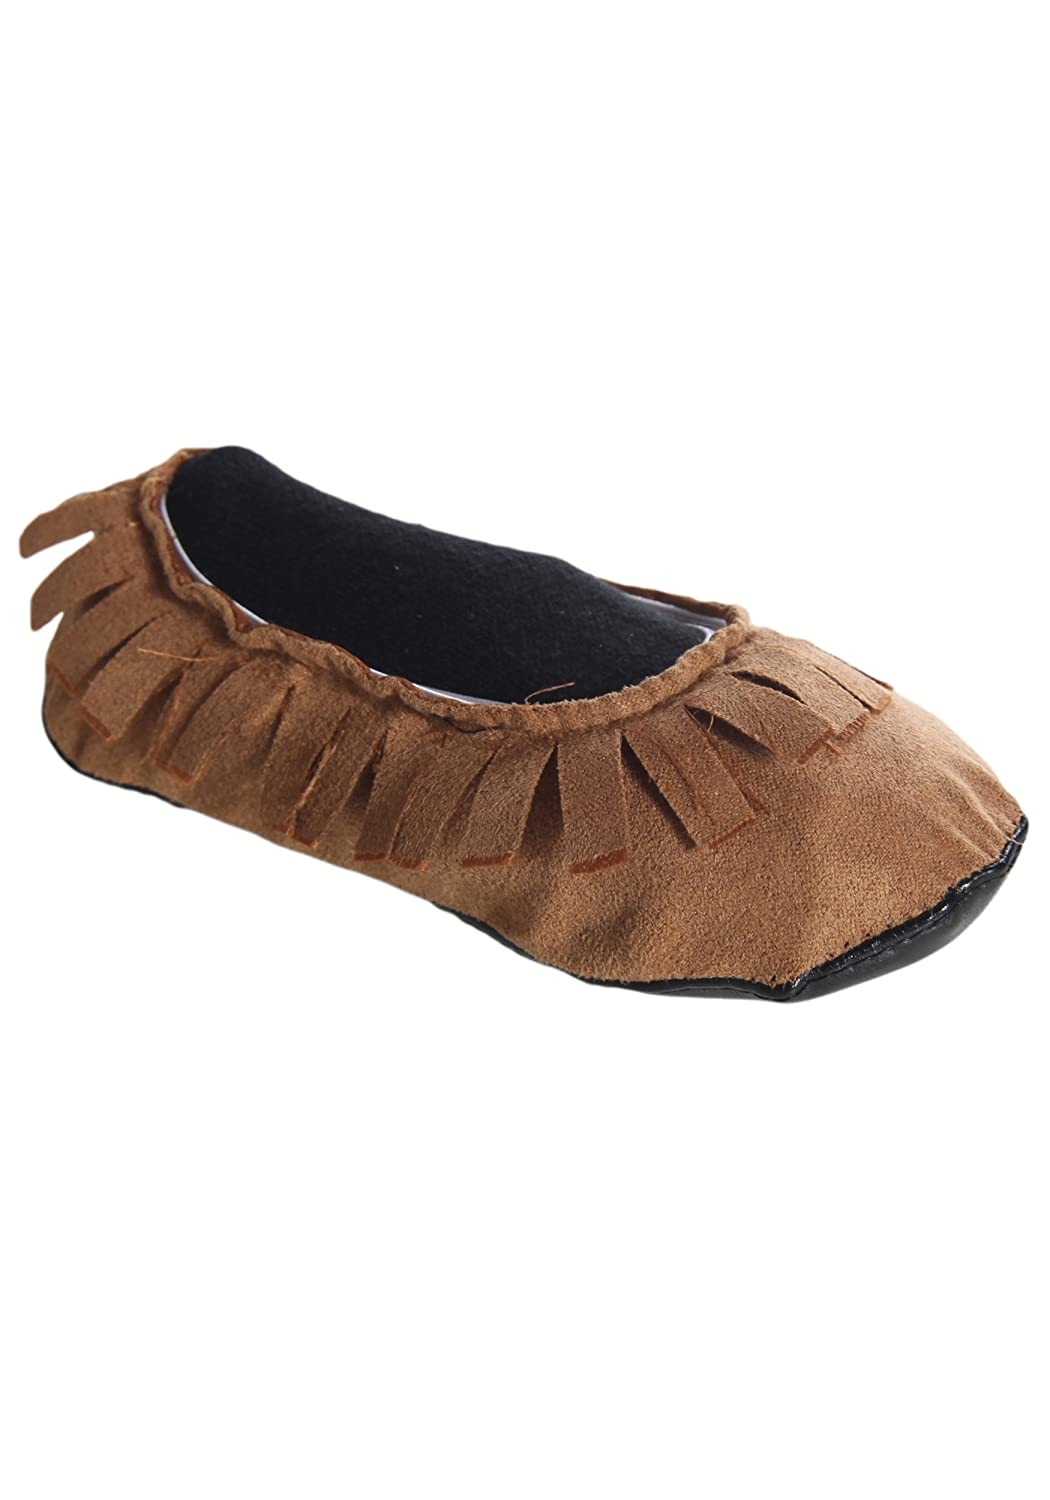 FunCostumes Kids Realistic Native American Moccasins Shoes